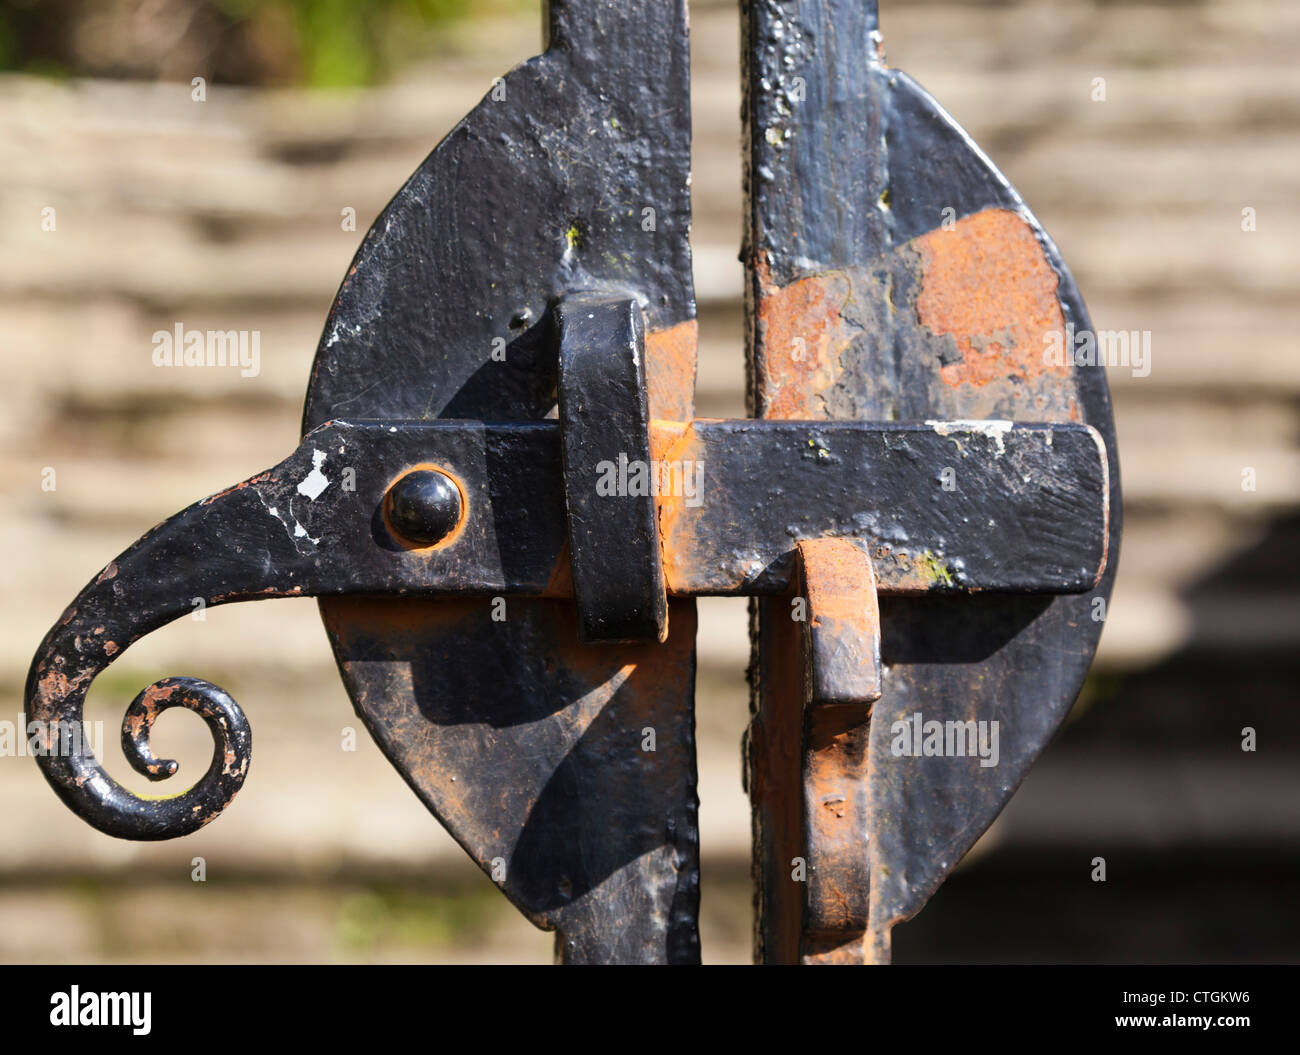 Castletownshend, West Cork, Ireland. Latch on gate of St. Barrahane's church. - Stock Image